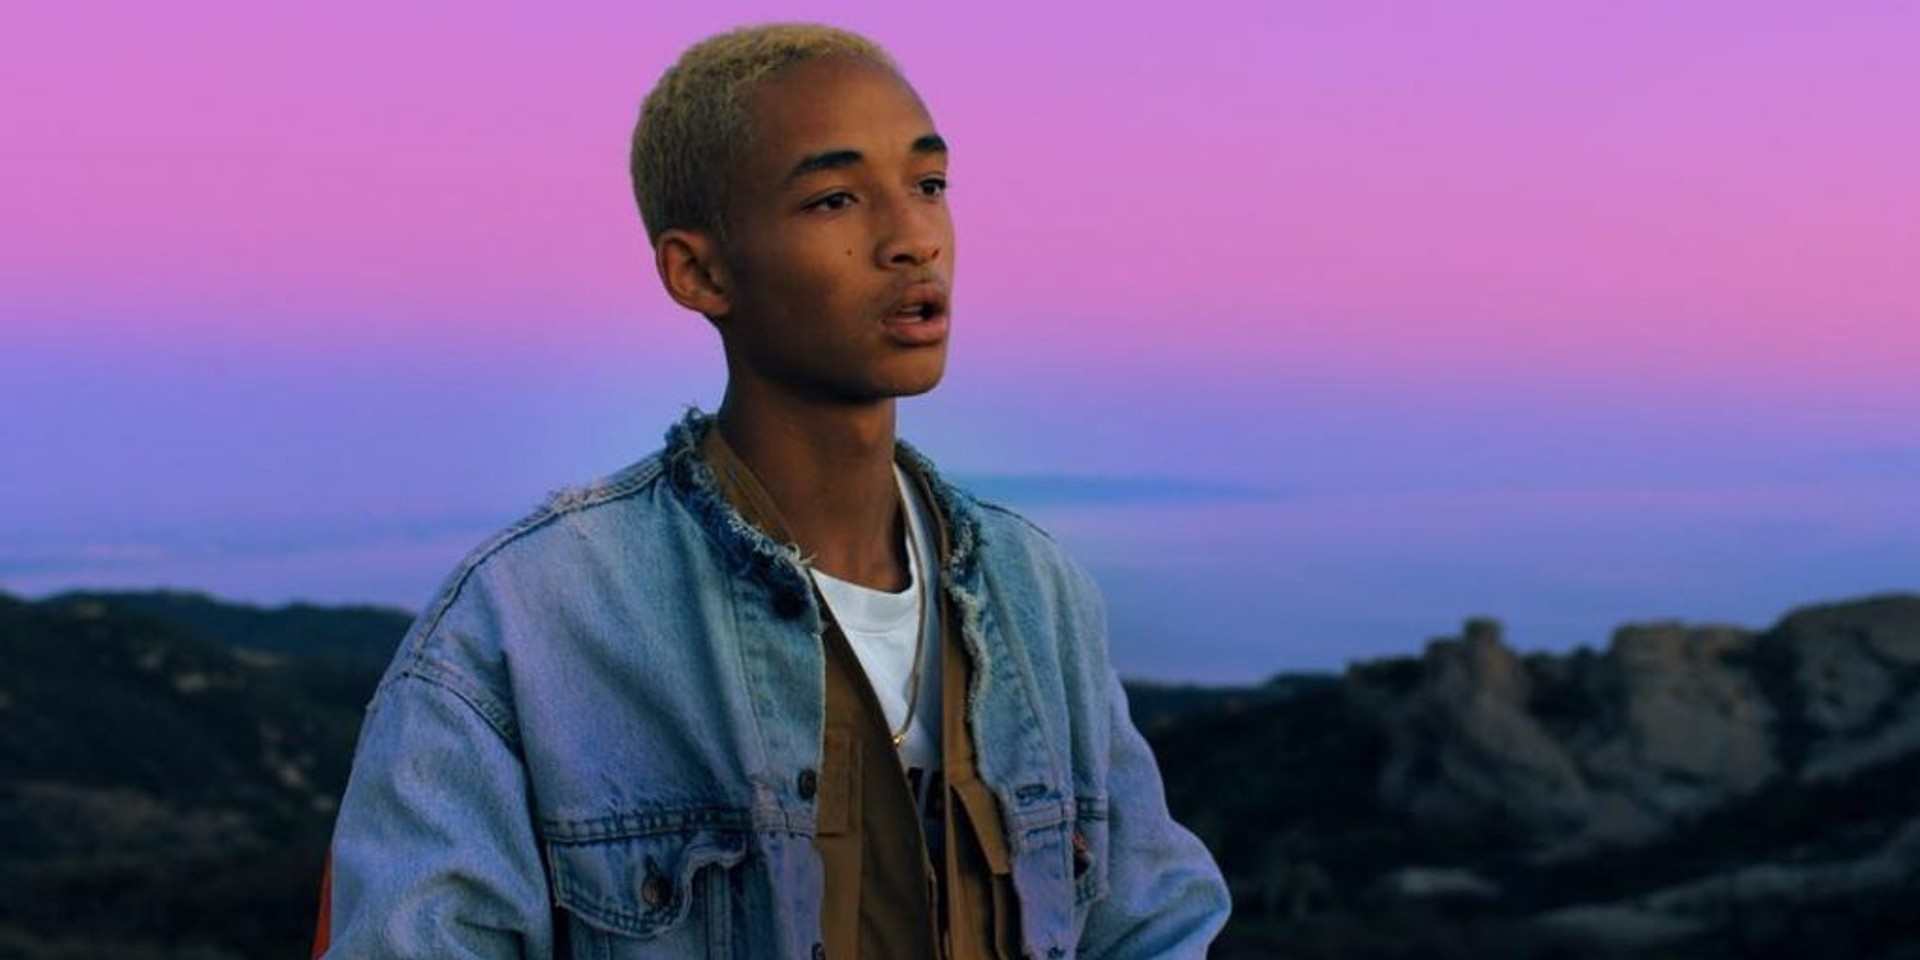 Jaden Smith is coming to Manila